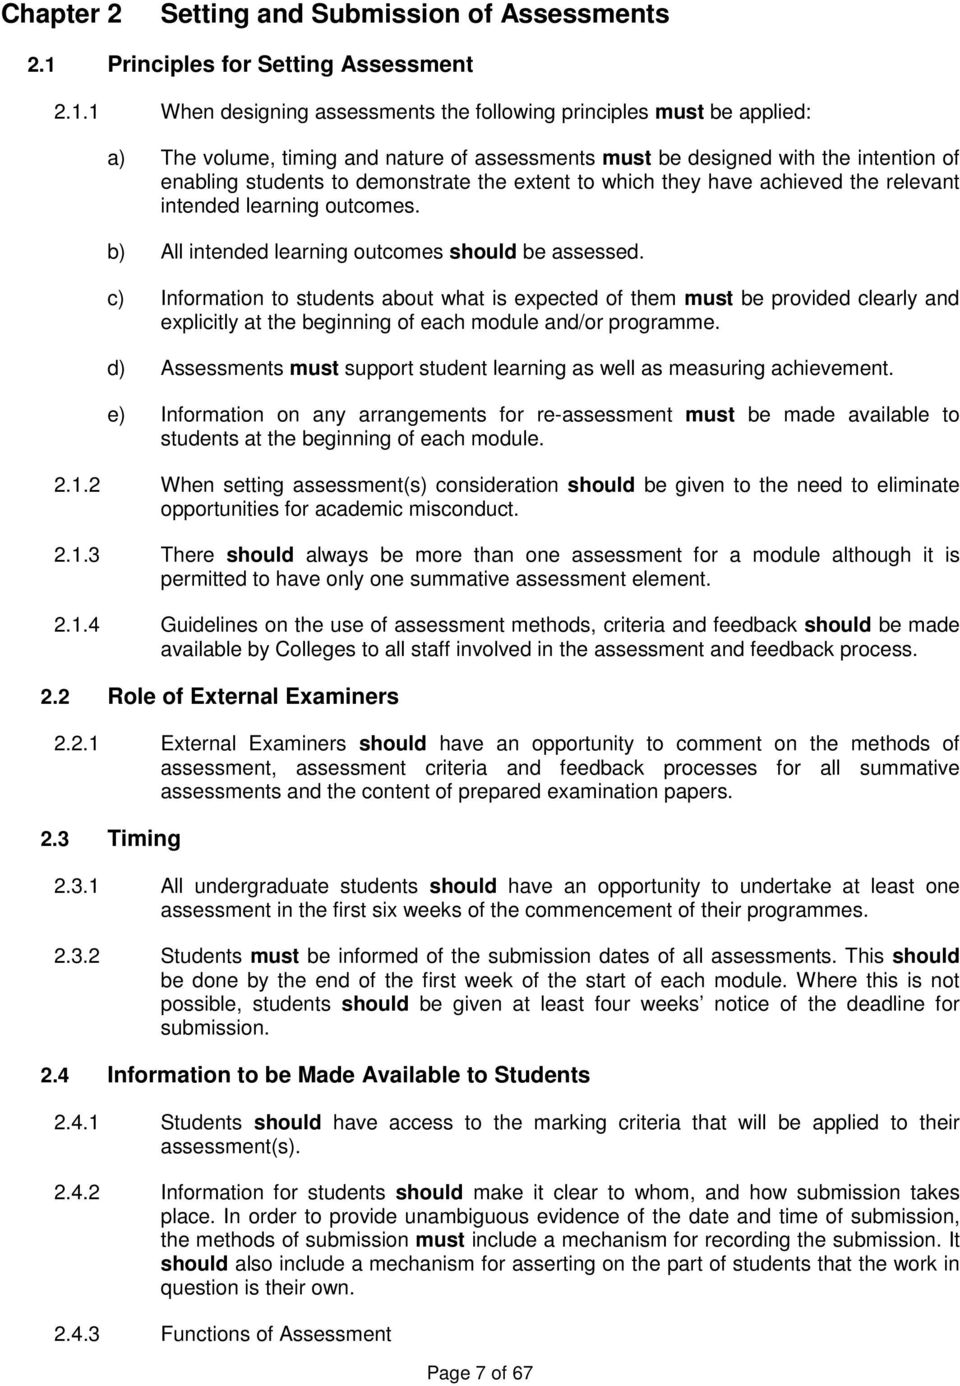 1 When designing assessments the following principles must be applied: a) The volume, timing and nature of assessments must be designed with the intention of enabling students to demonstrate the